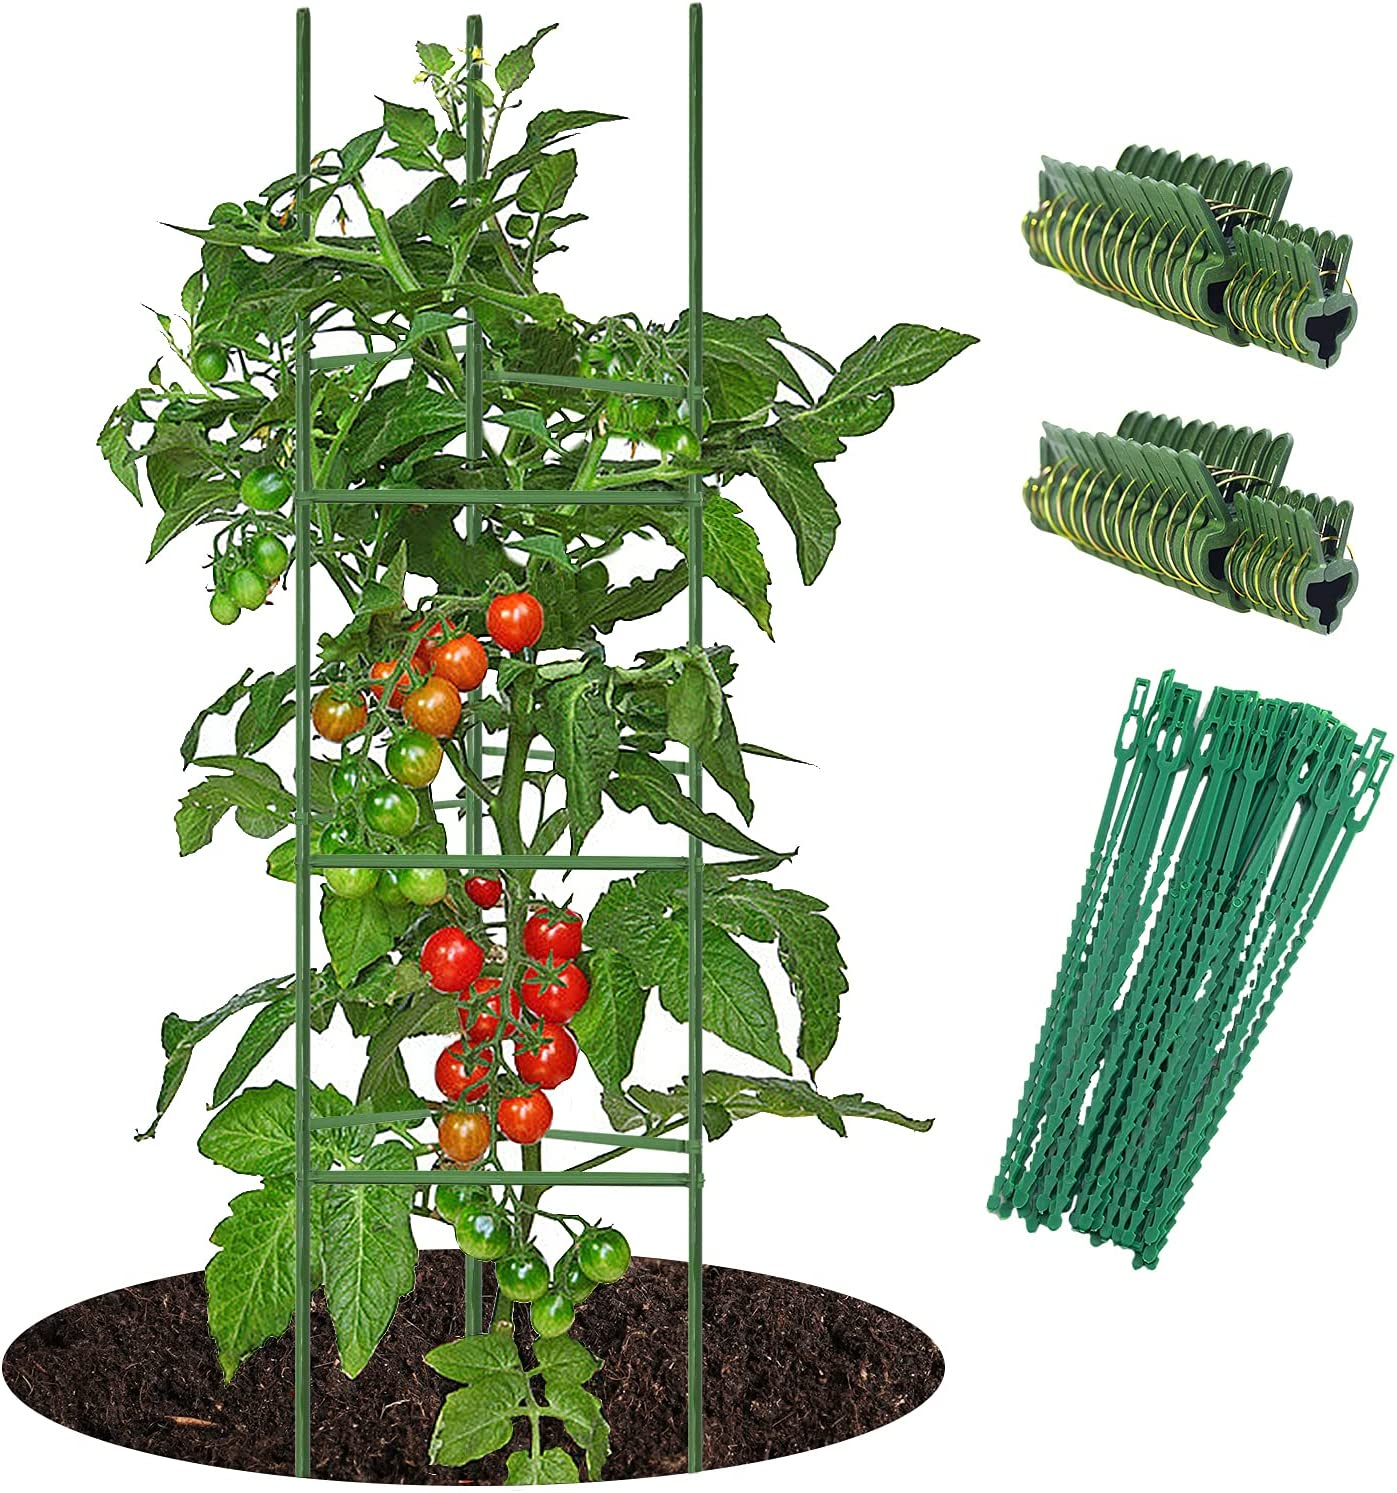 5ft 5-Set Tomato Cage Support Green Garden Plant Stakes for Climbing, 20 Pack Clips and 50 Pcs Plant Ties Include